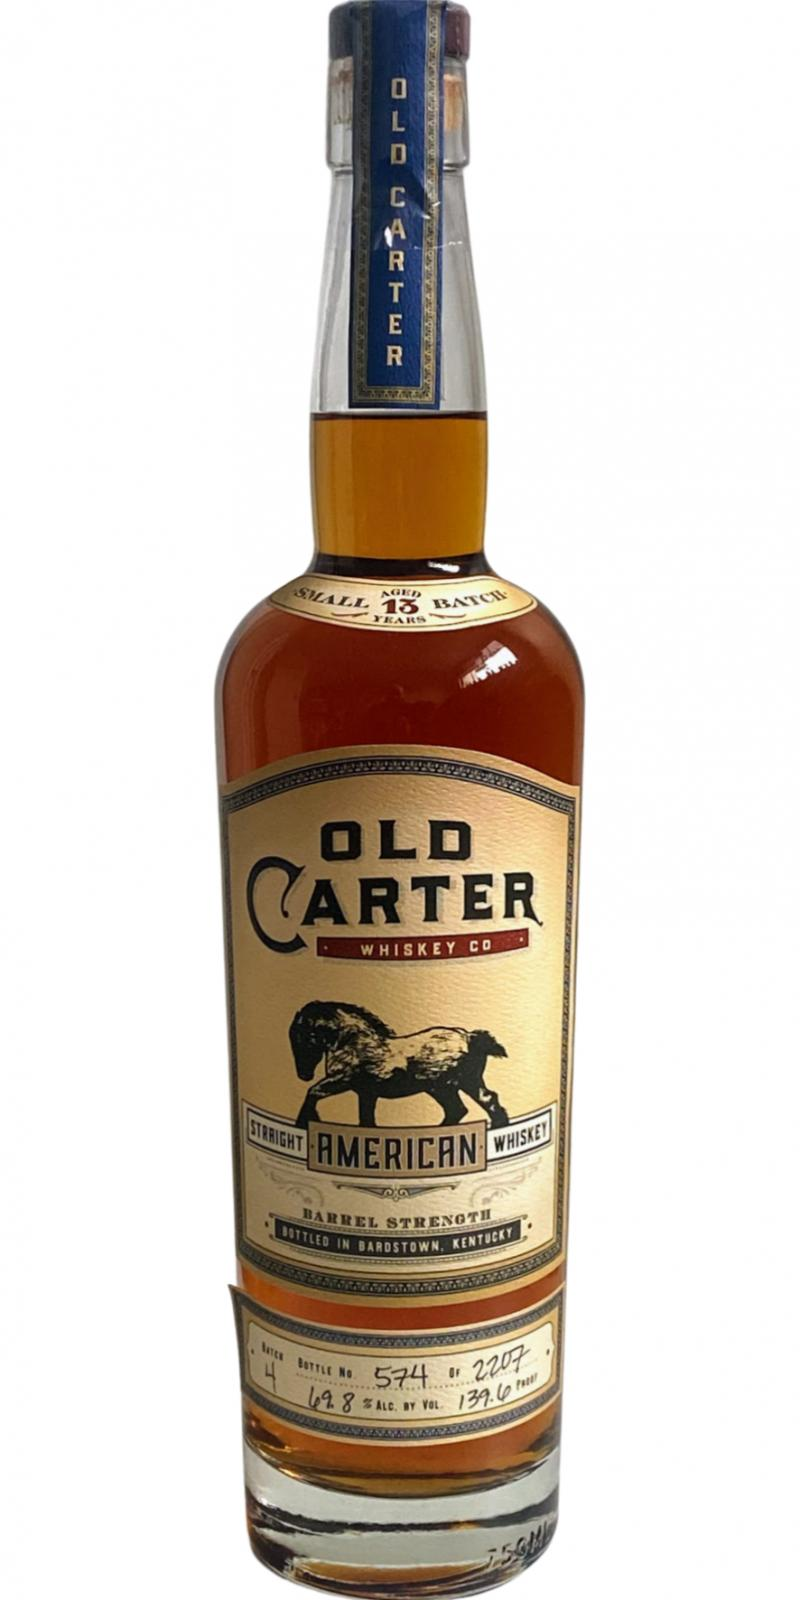 Old Carter Straight American Whiskey